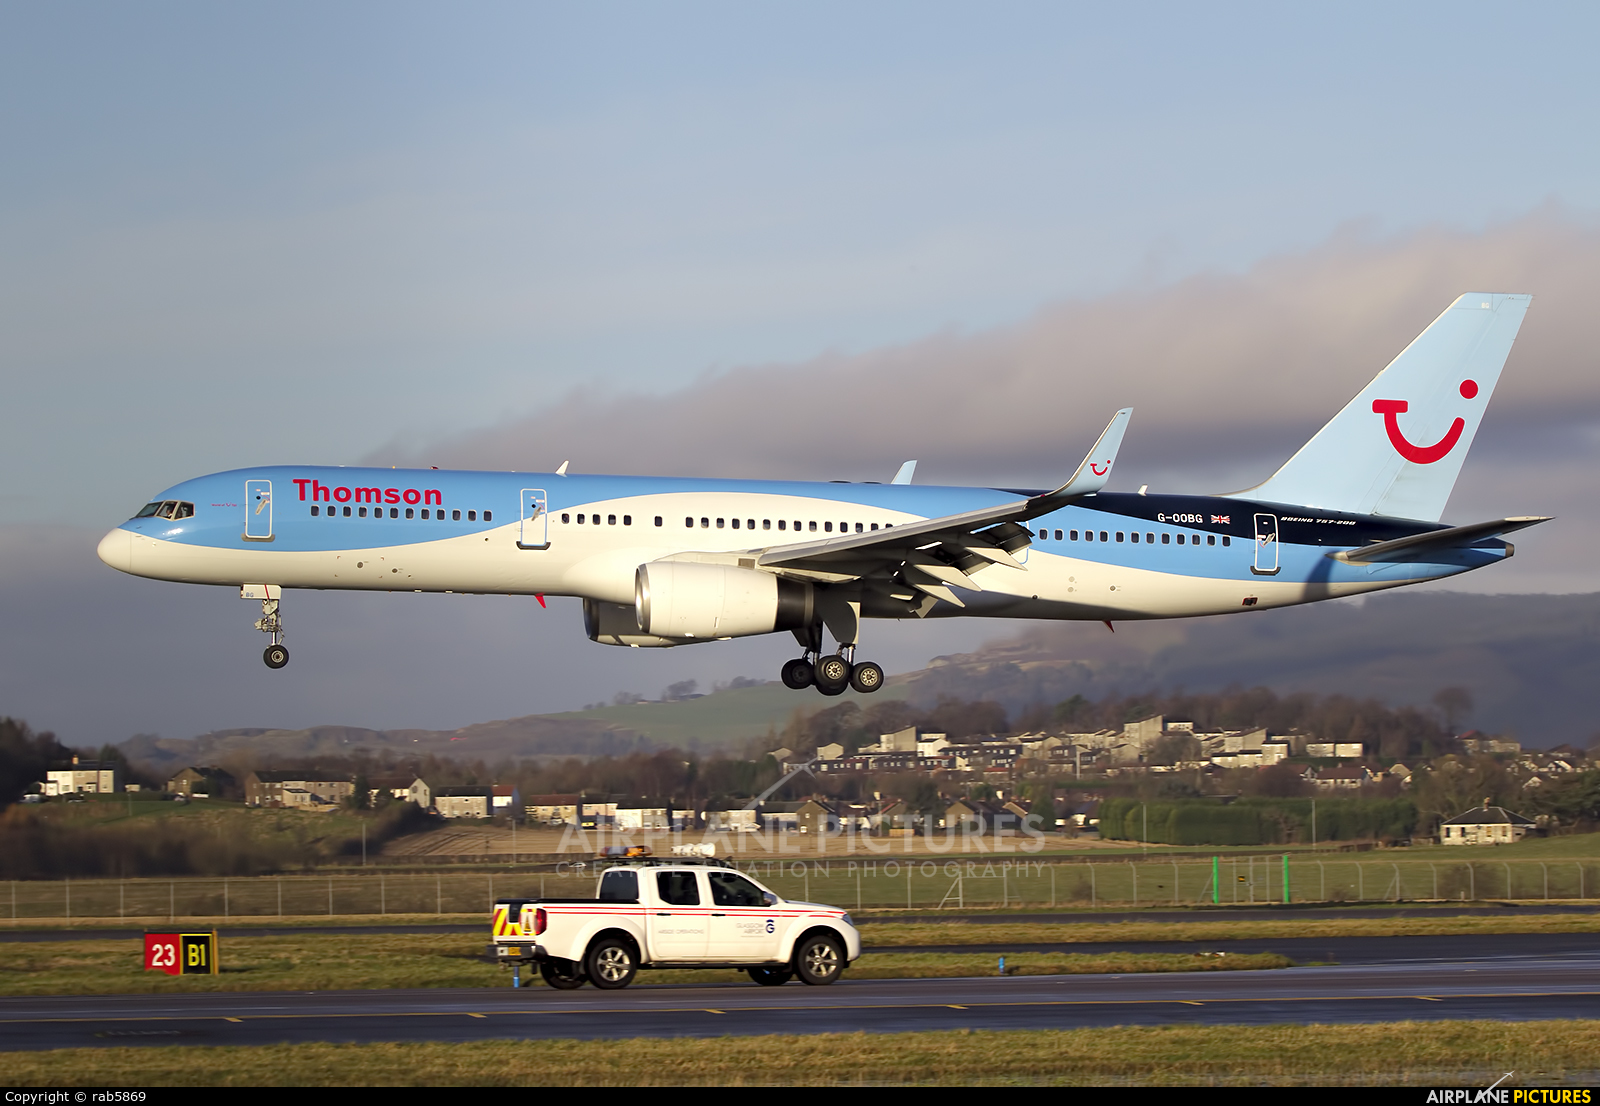 Thomson/Thomsonfly G-OOBG aircraft at Glasgow